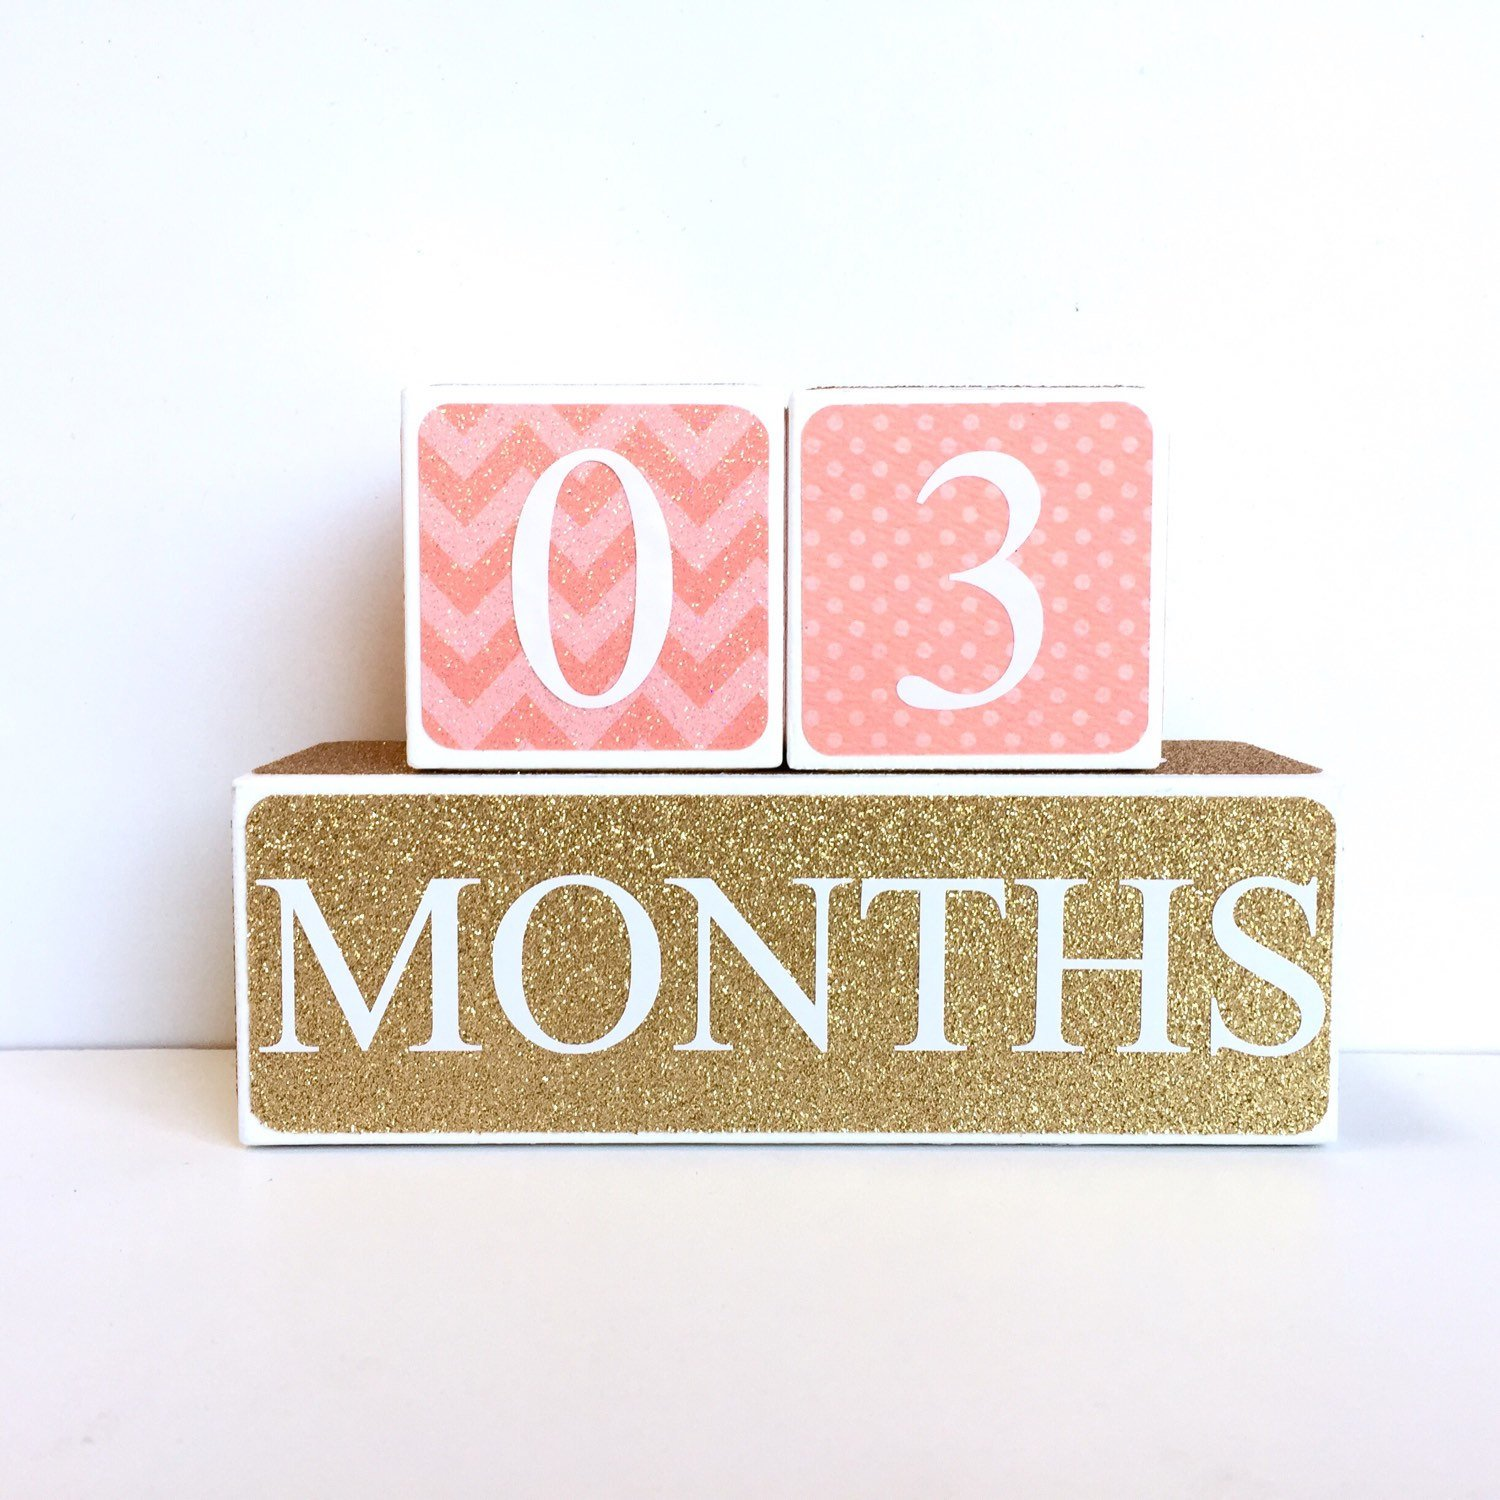 3 Color Styles Wooden Baby Milestone Blocks Baby Photography Props Nursery Decor Wooden Age Blocks Baby Shower Gifts by Sweet Sage Studio AB1 Best Baby Age Photo Props